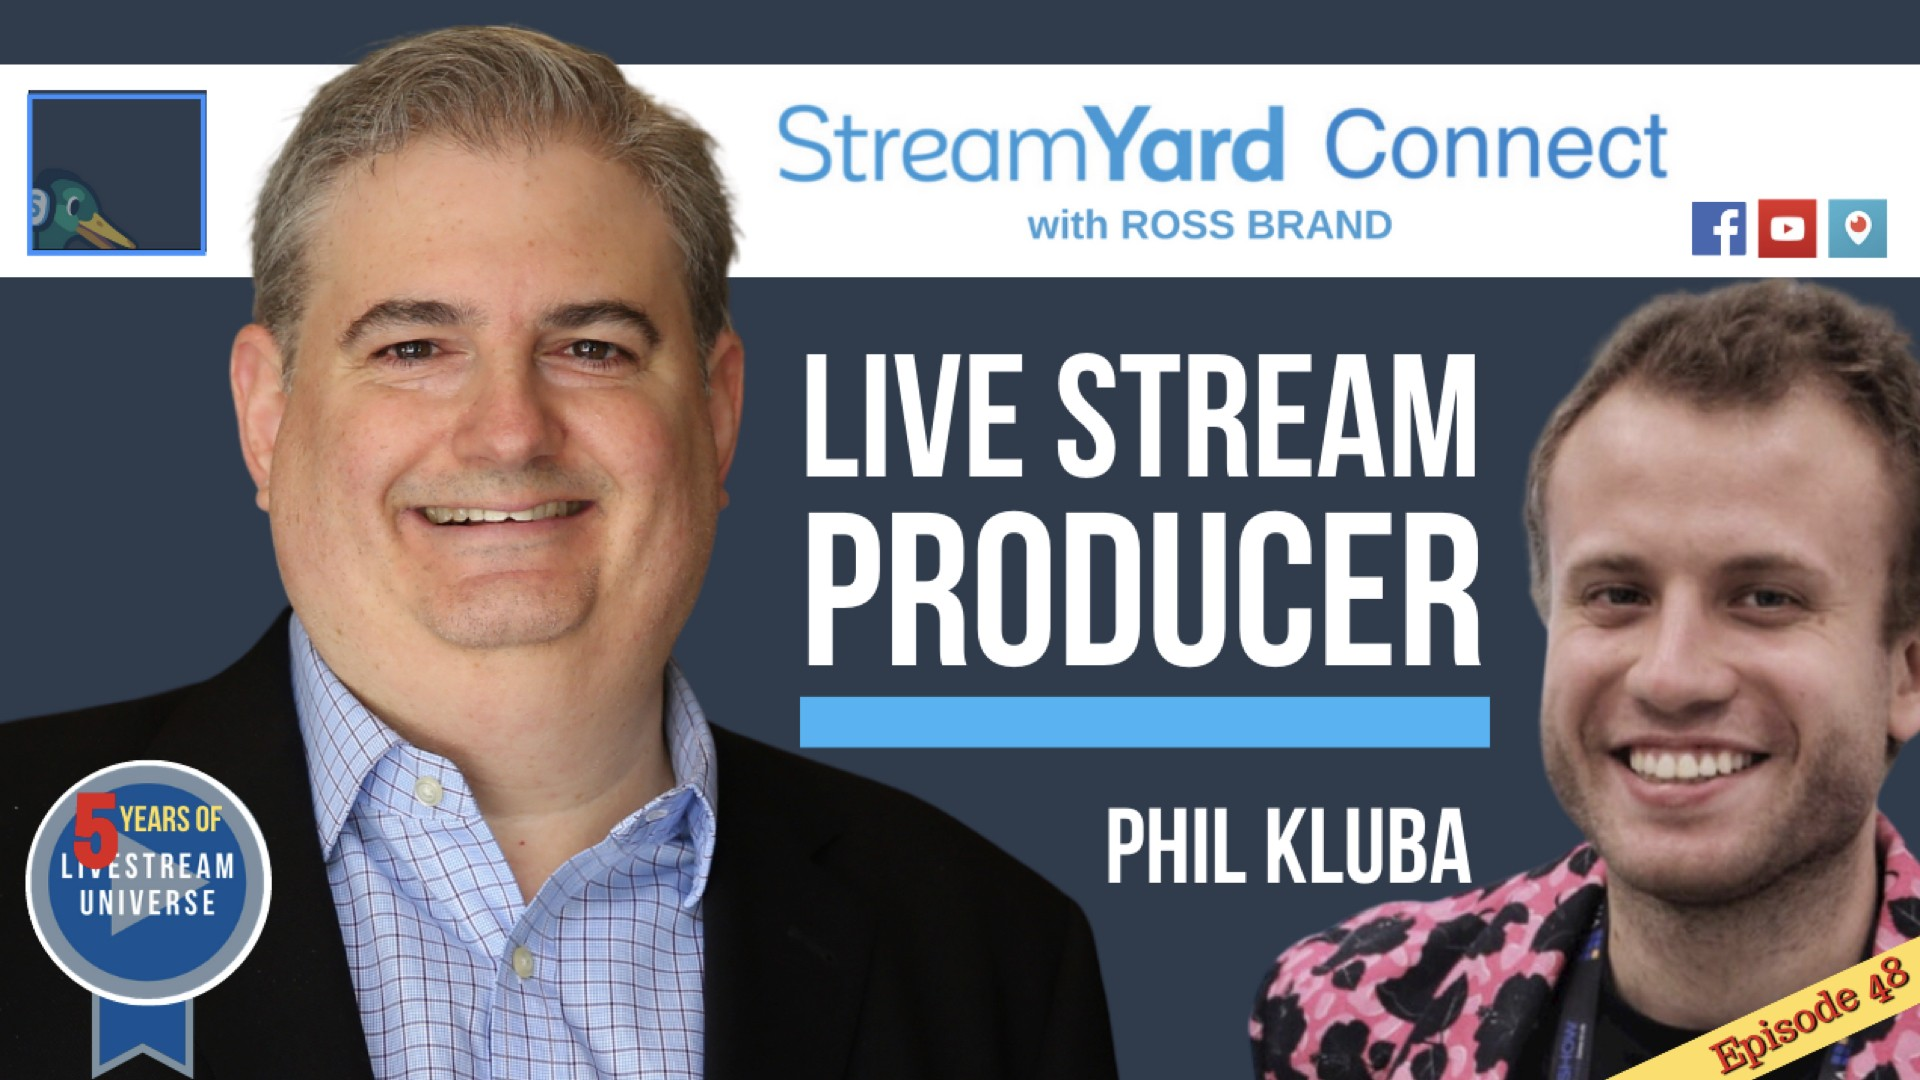 StreamYard Connect Ross Brand Phil Kluba